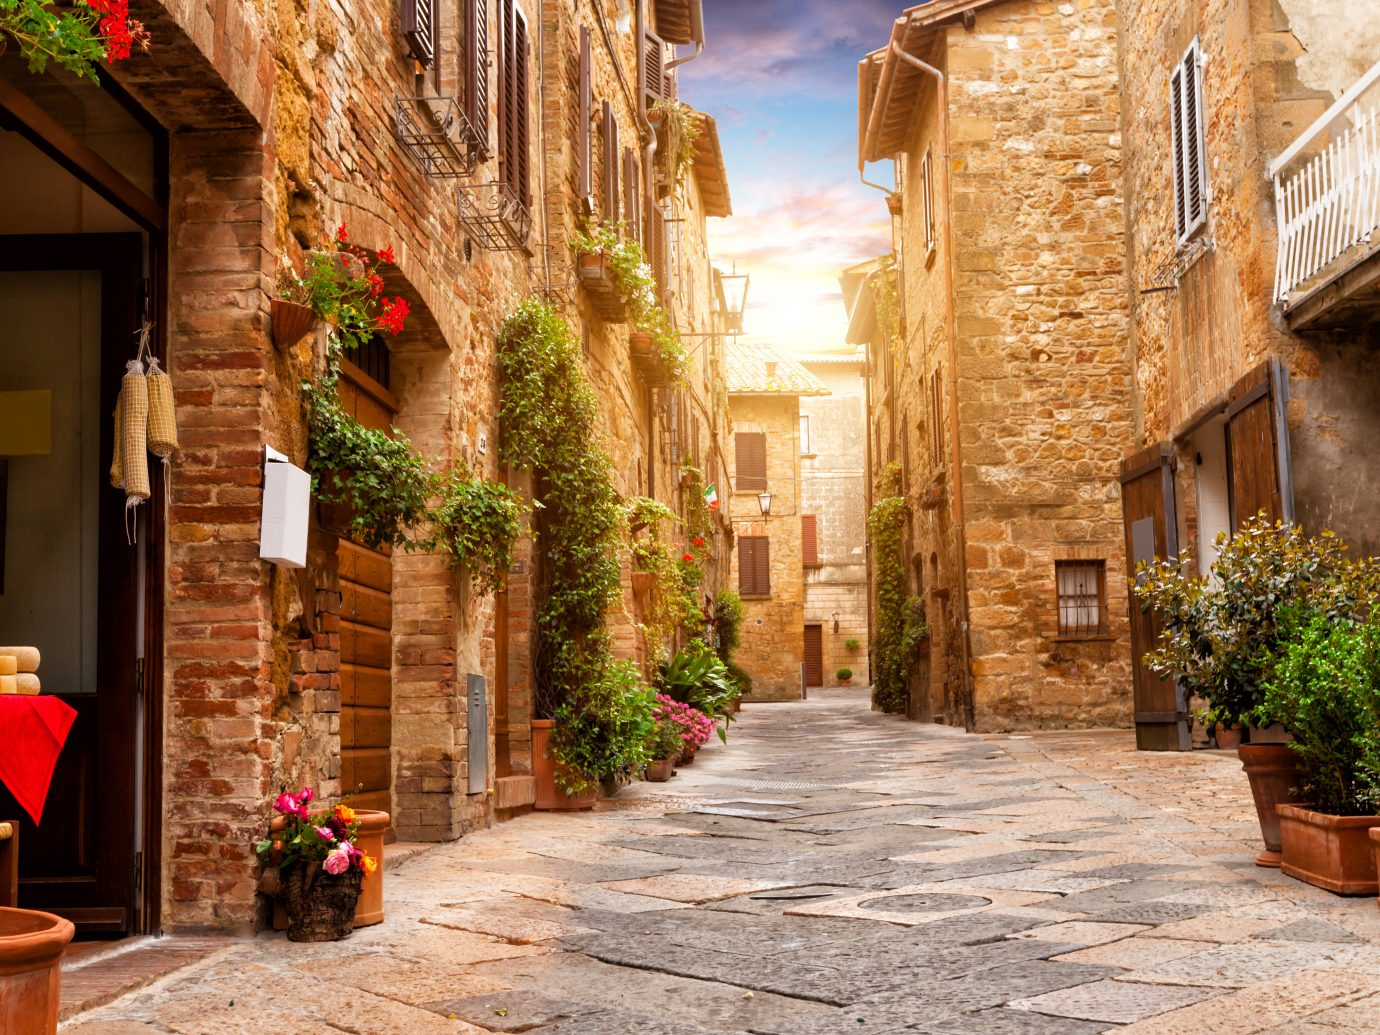 Colorful street in Pienza Italy